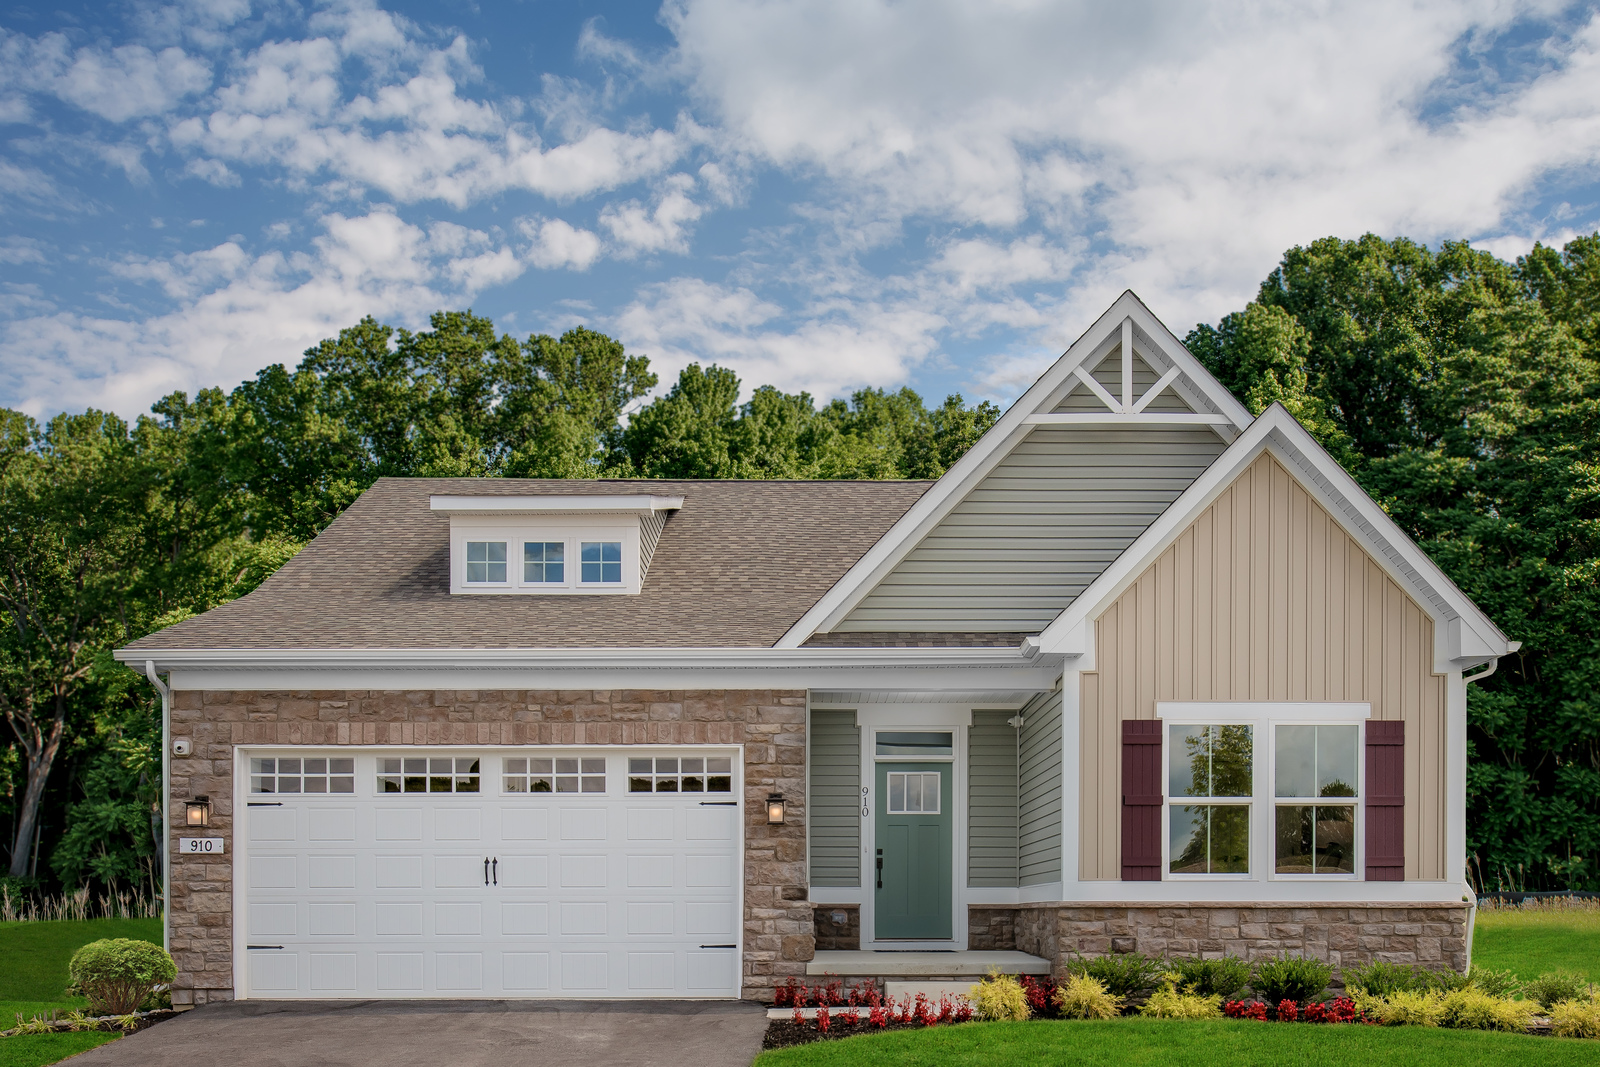 New Homes for sale at Pelican Point in Millsboro, DE within the